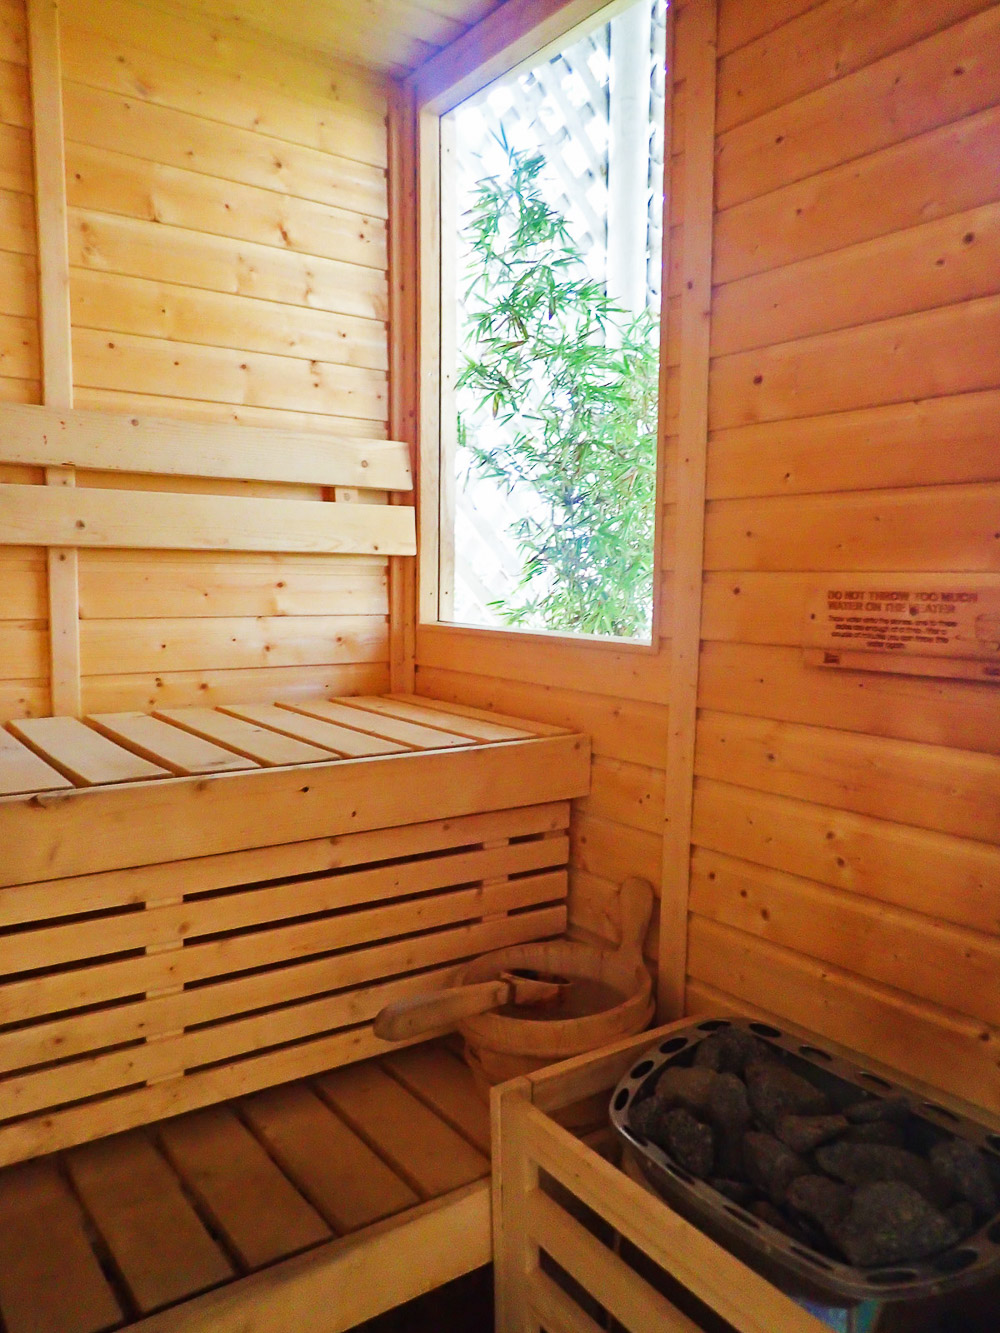 STEAM ROOM WITH A VIEW. Detox while enjoying the view.